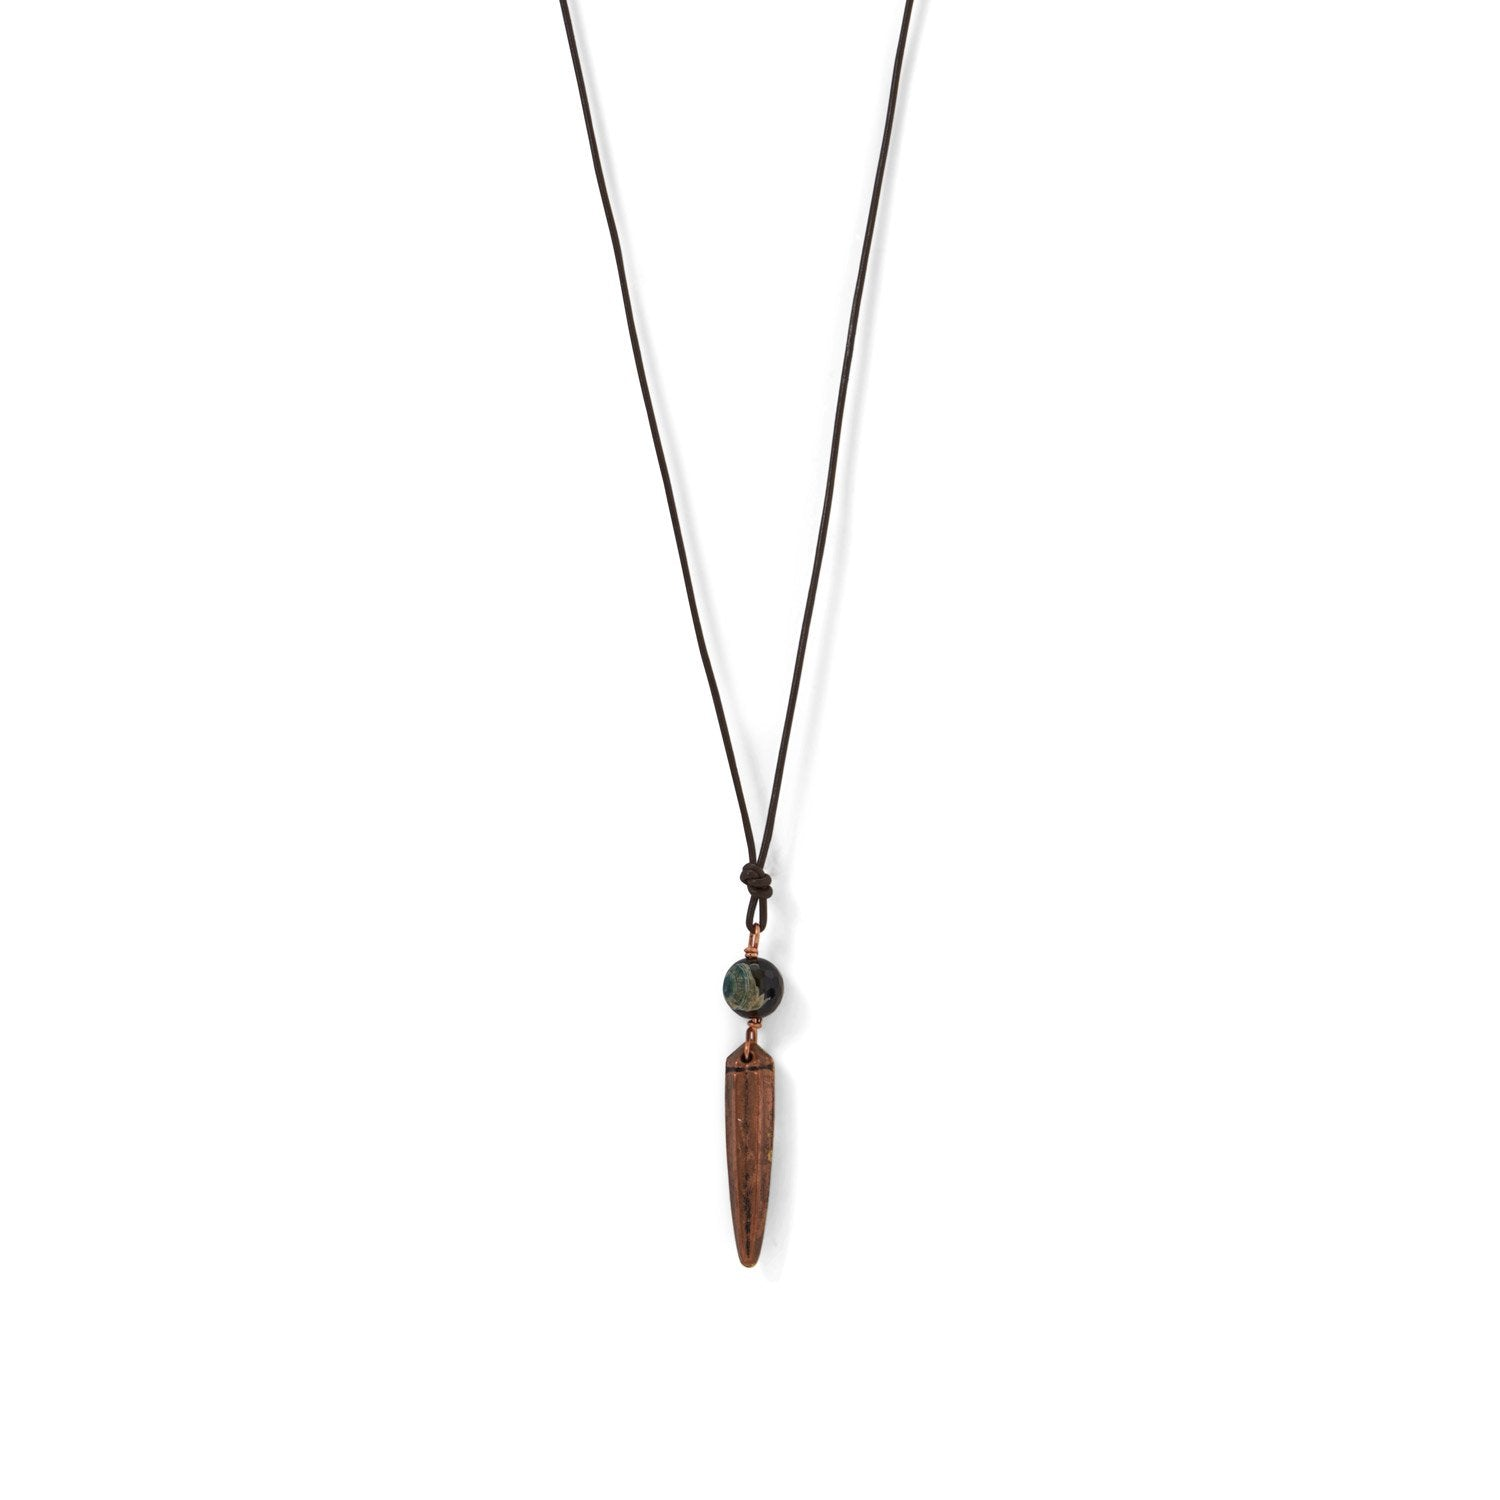 Adjustable Brown Leather Cord Necklace with Copper Spike